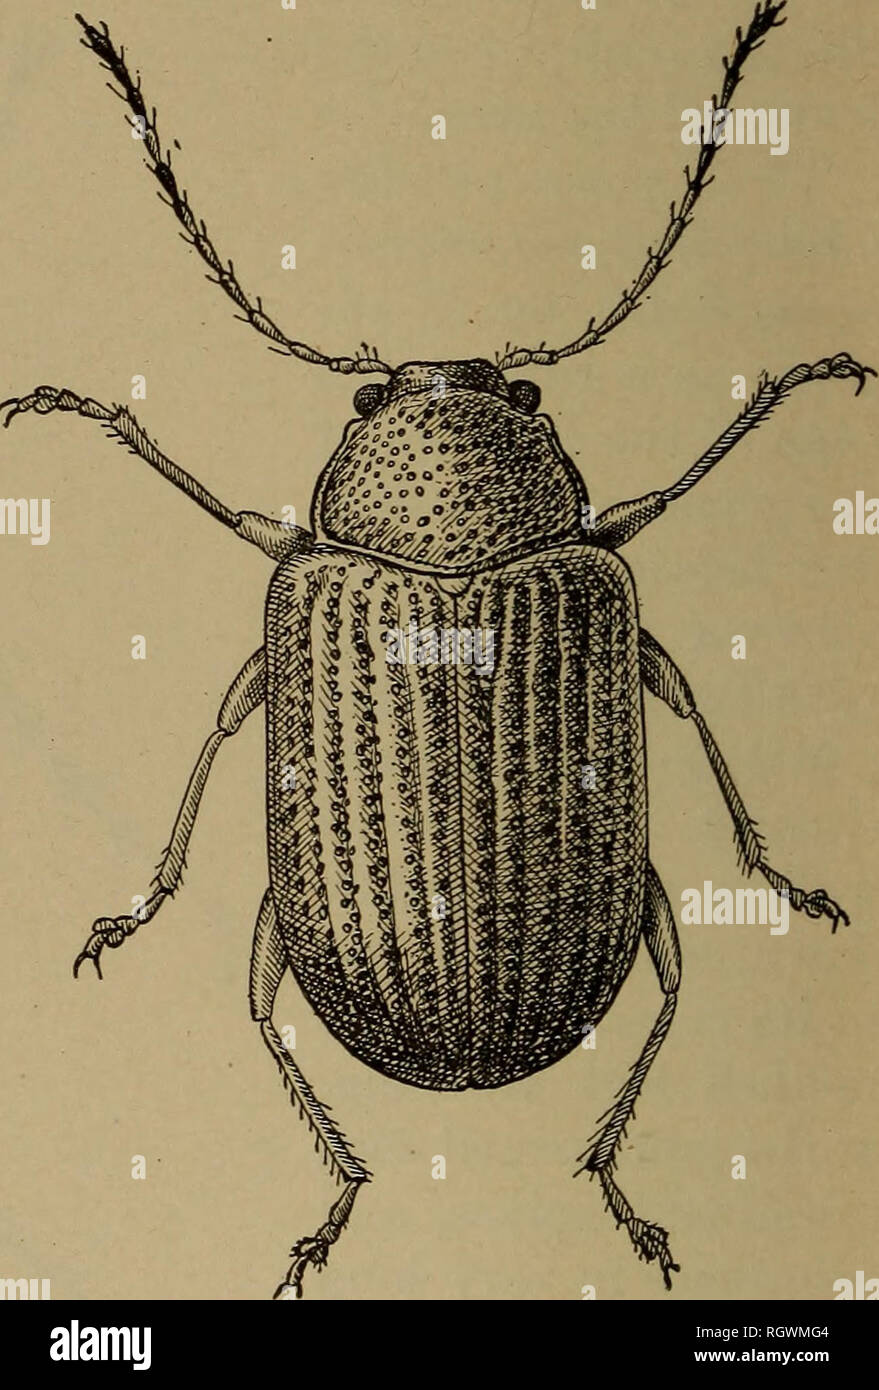 . Bulletin. Insects; Insect pests; Entomology; Insects; Insect pests; Entomology. Fig. 6.—The redheaded Systena (Systena fron- Fig. 7.—The grapevine Colaspis (Colaspis hrunnea): talis): Adult or beetle. Much enlarged. Adult or beetle. Much enlarged. (Original.) (Original.) wing covers the deep punctures are arranged in double longitudinal rows or striae. The beetle feeds upon the grape foliage in a manner more or less similar to that of the grape root-worm beetle. It is not within the scope of this paper to treat the various insect problems, such as those of the grape leafhopper {TypJilocyha c - Stock Image